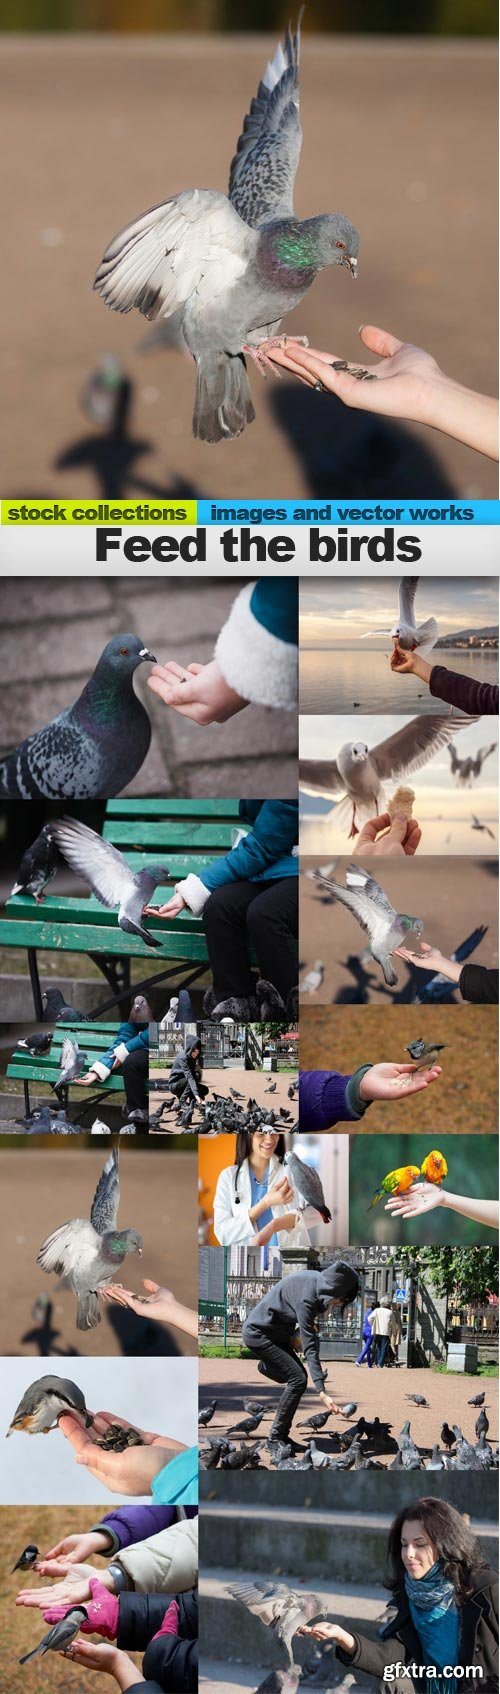 Feed the birds, 15 x UHQ JPEG